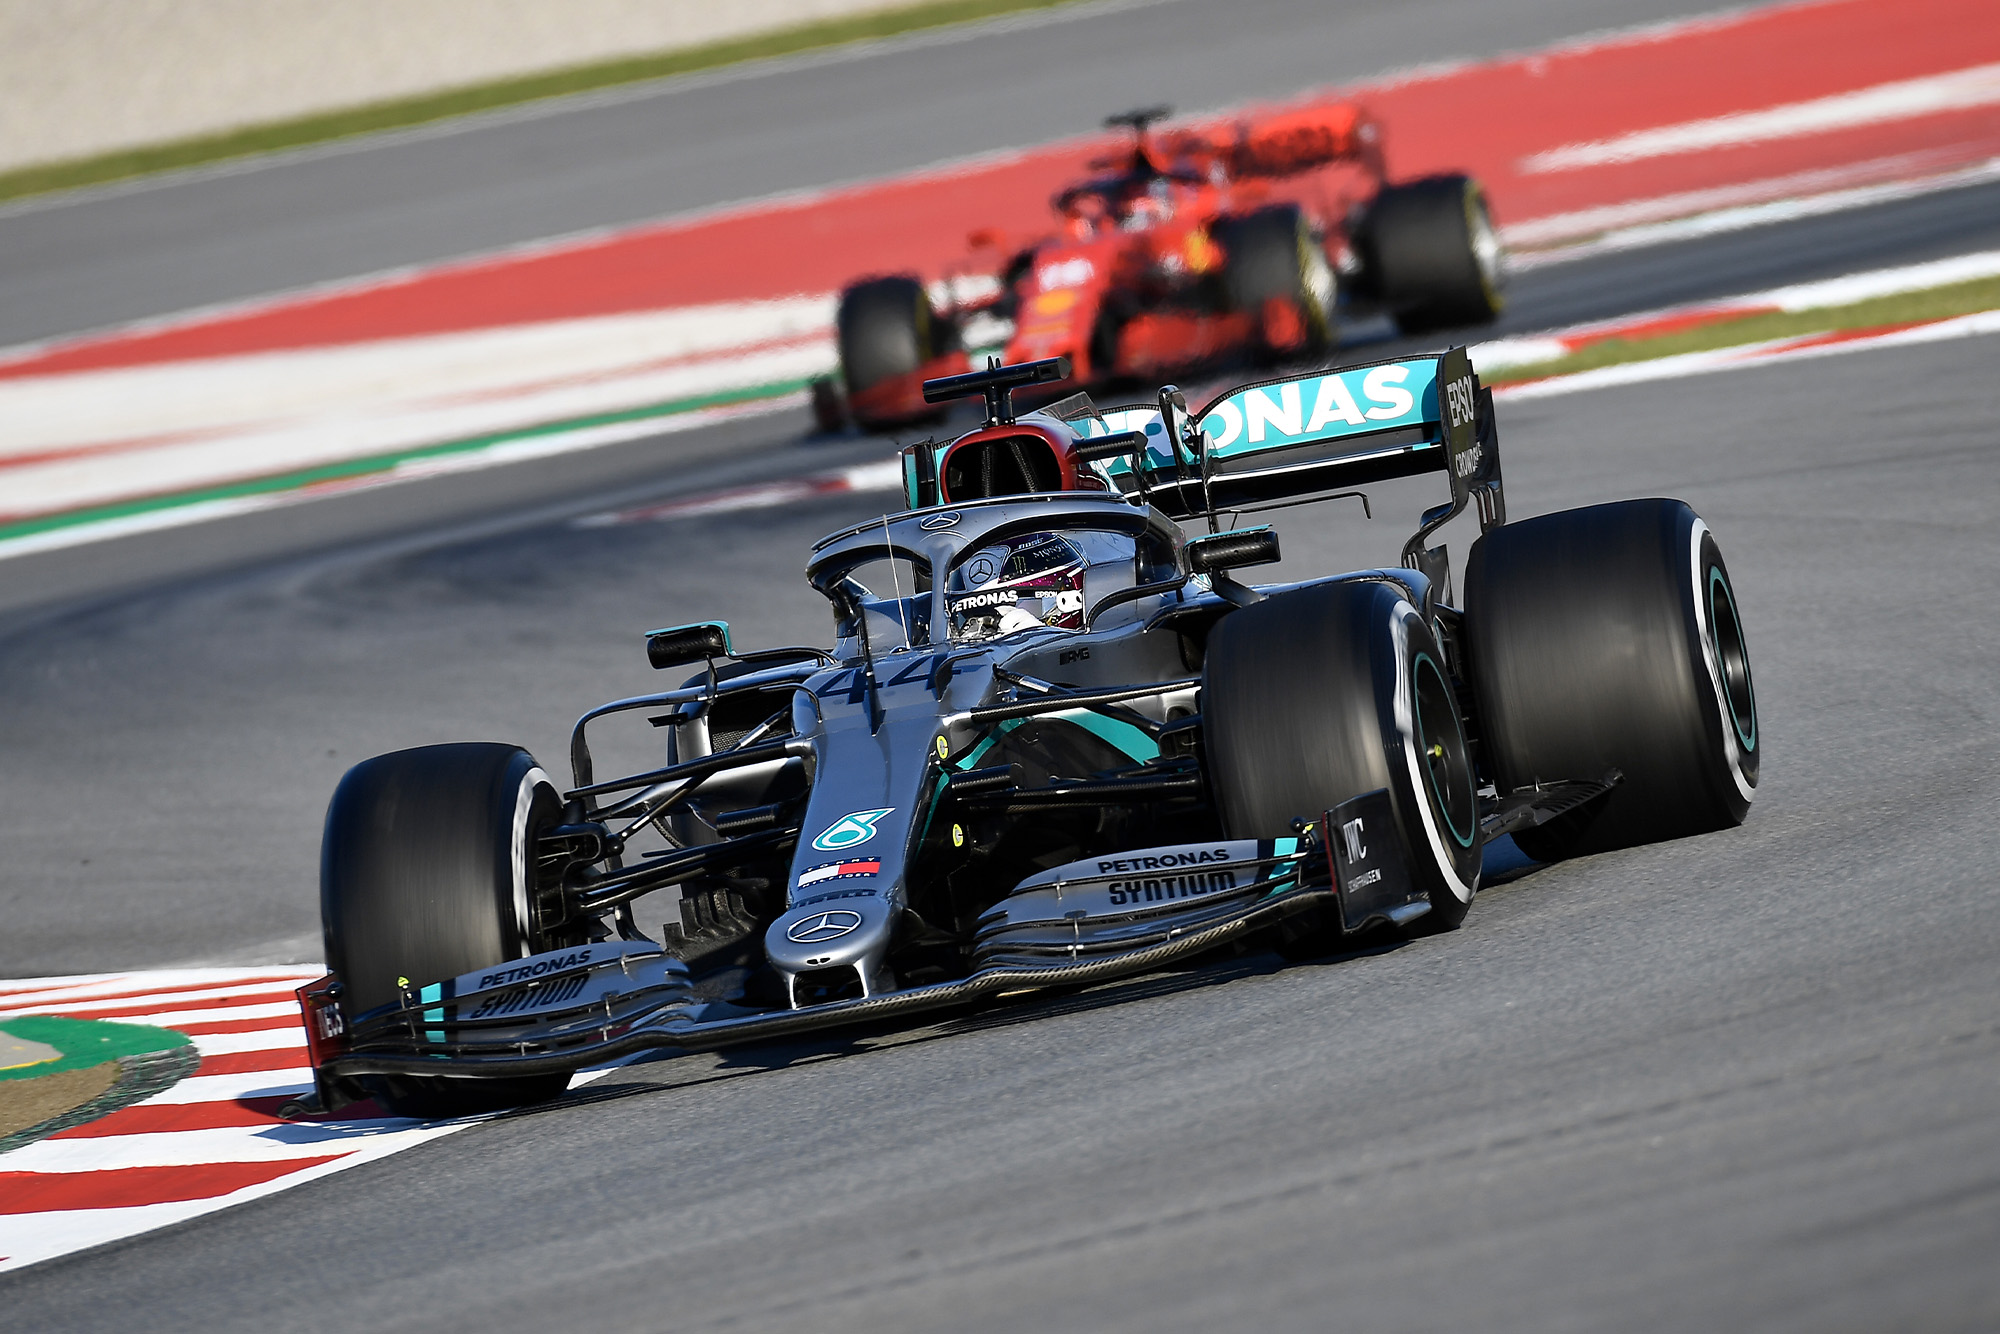 MPH: F1 testing lap time analysis – how far ahead is Mercedes?